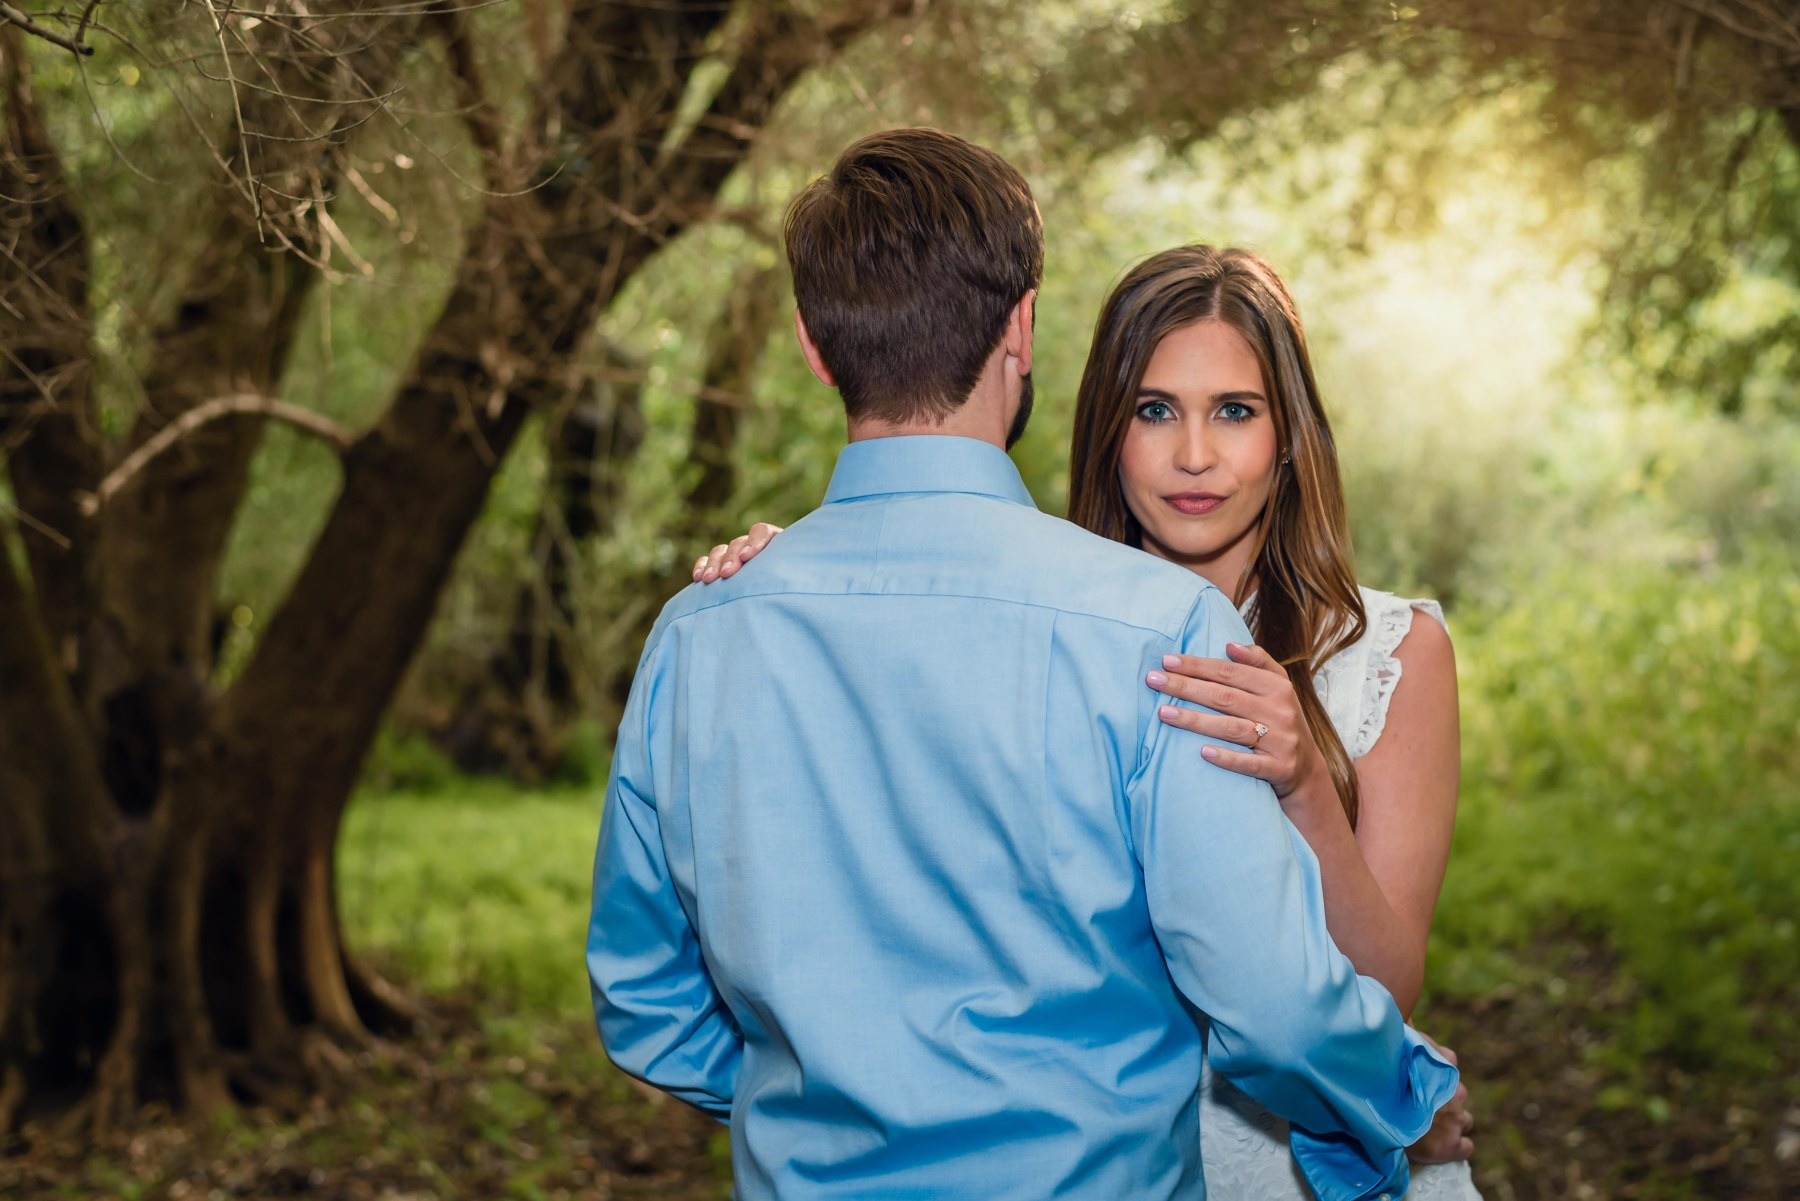 bay area photographer couples engagement photography olive grove sun light